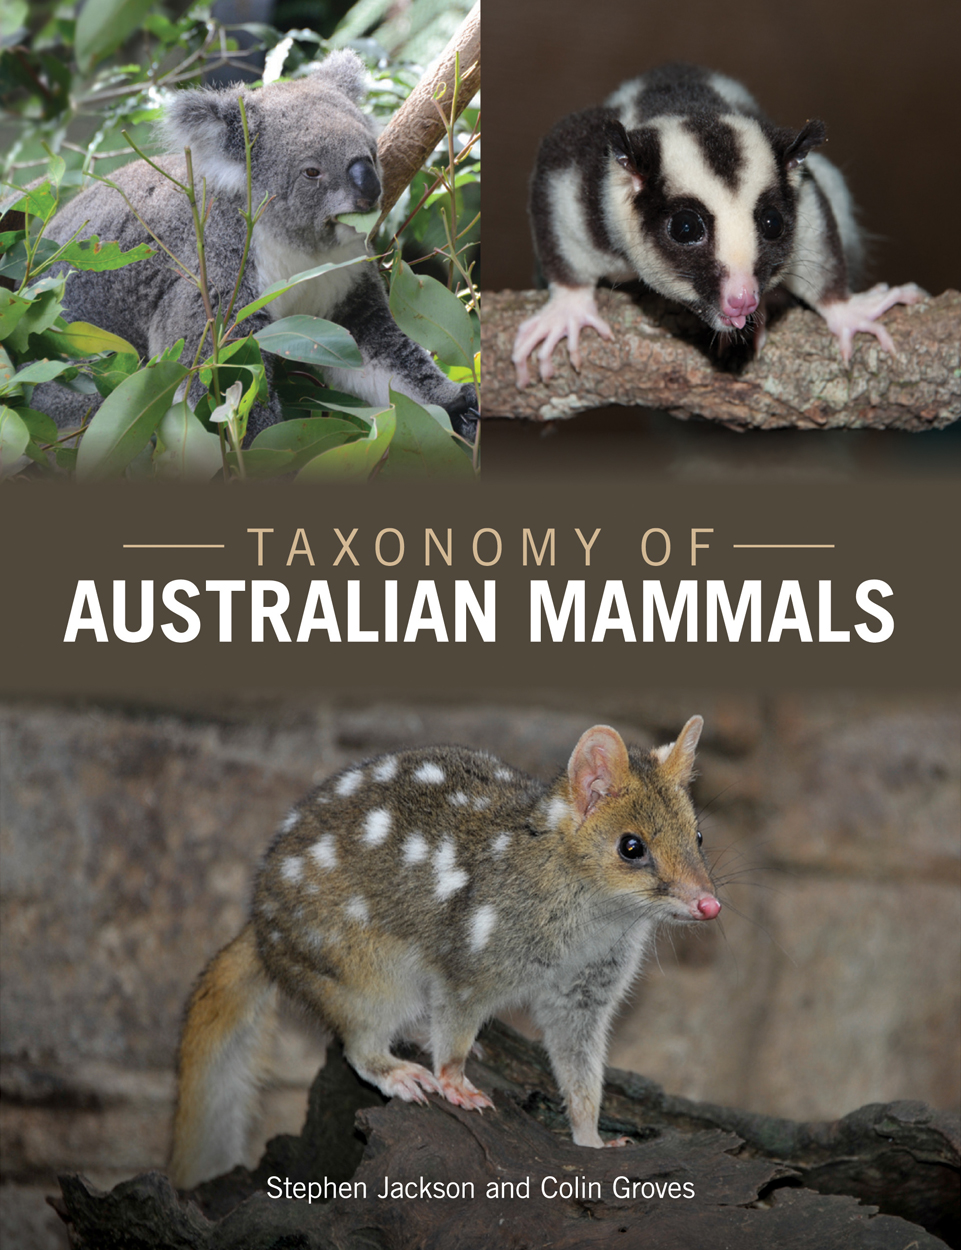 Cover image of Taxonomy of Australian Mammals, featuring photos of a Koala